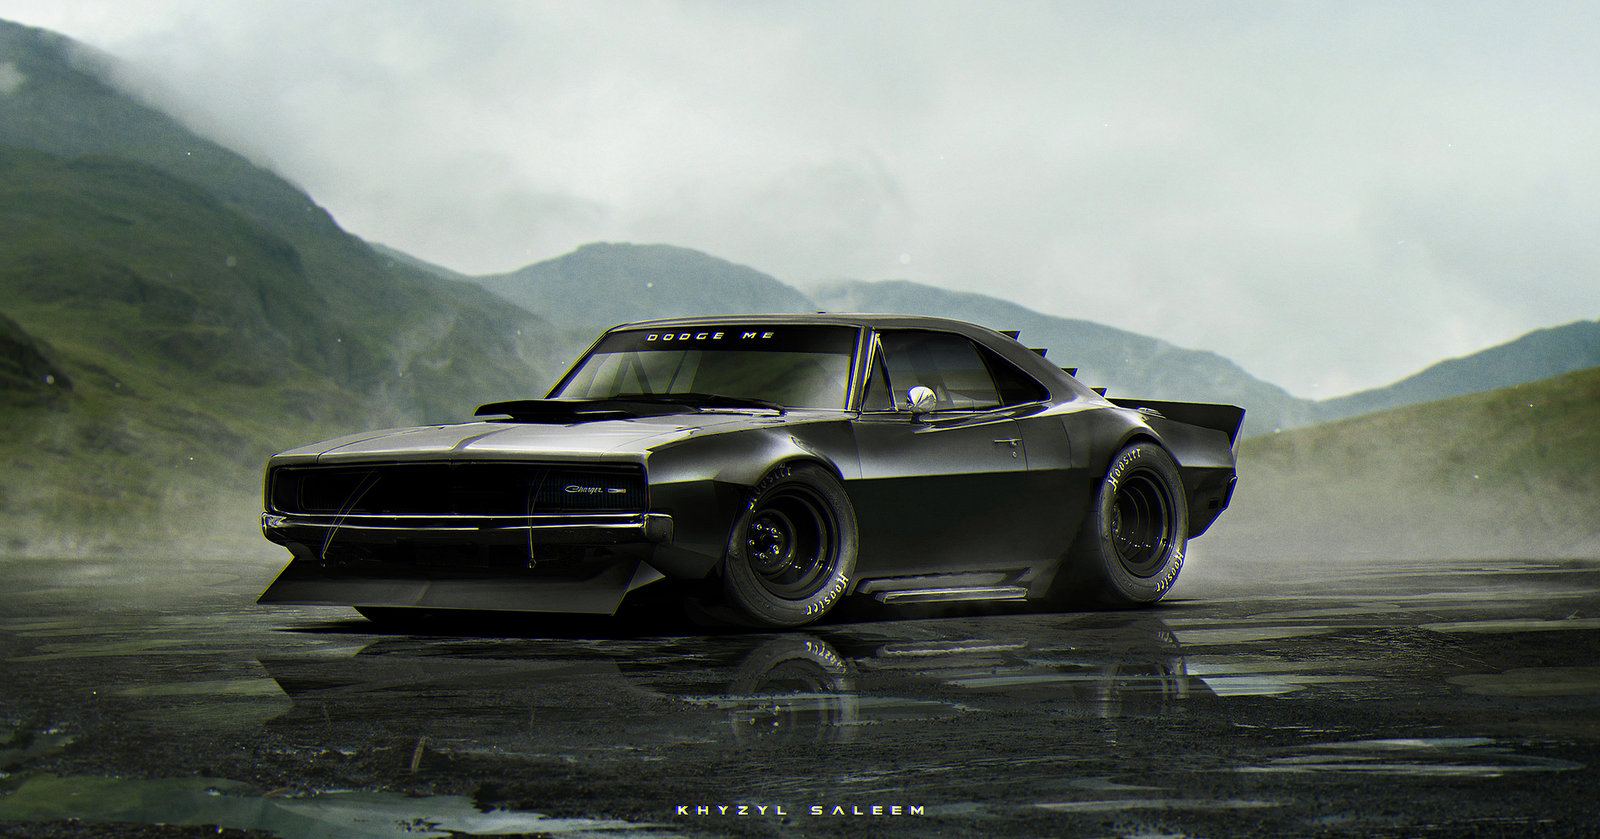 Wanted to place the car somewhere you wouldn't really expect to see a classic muscle car. Haha